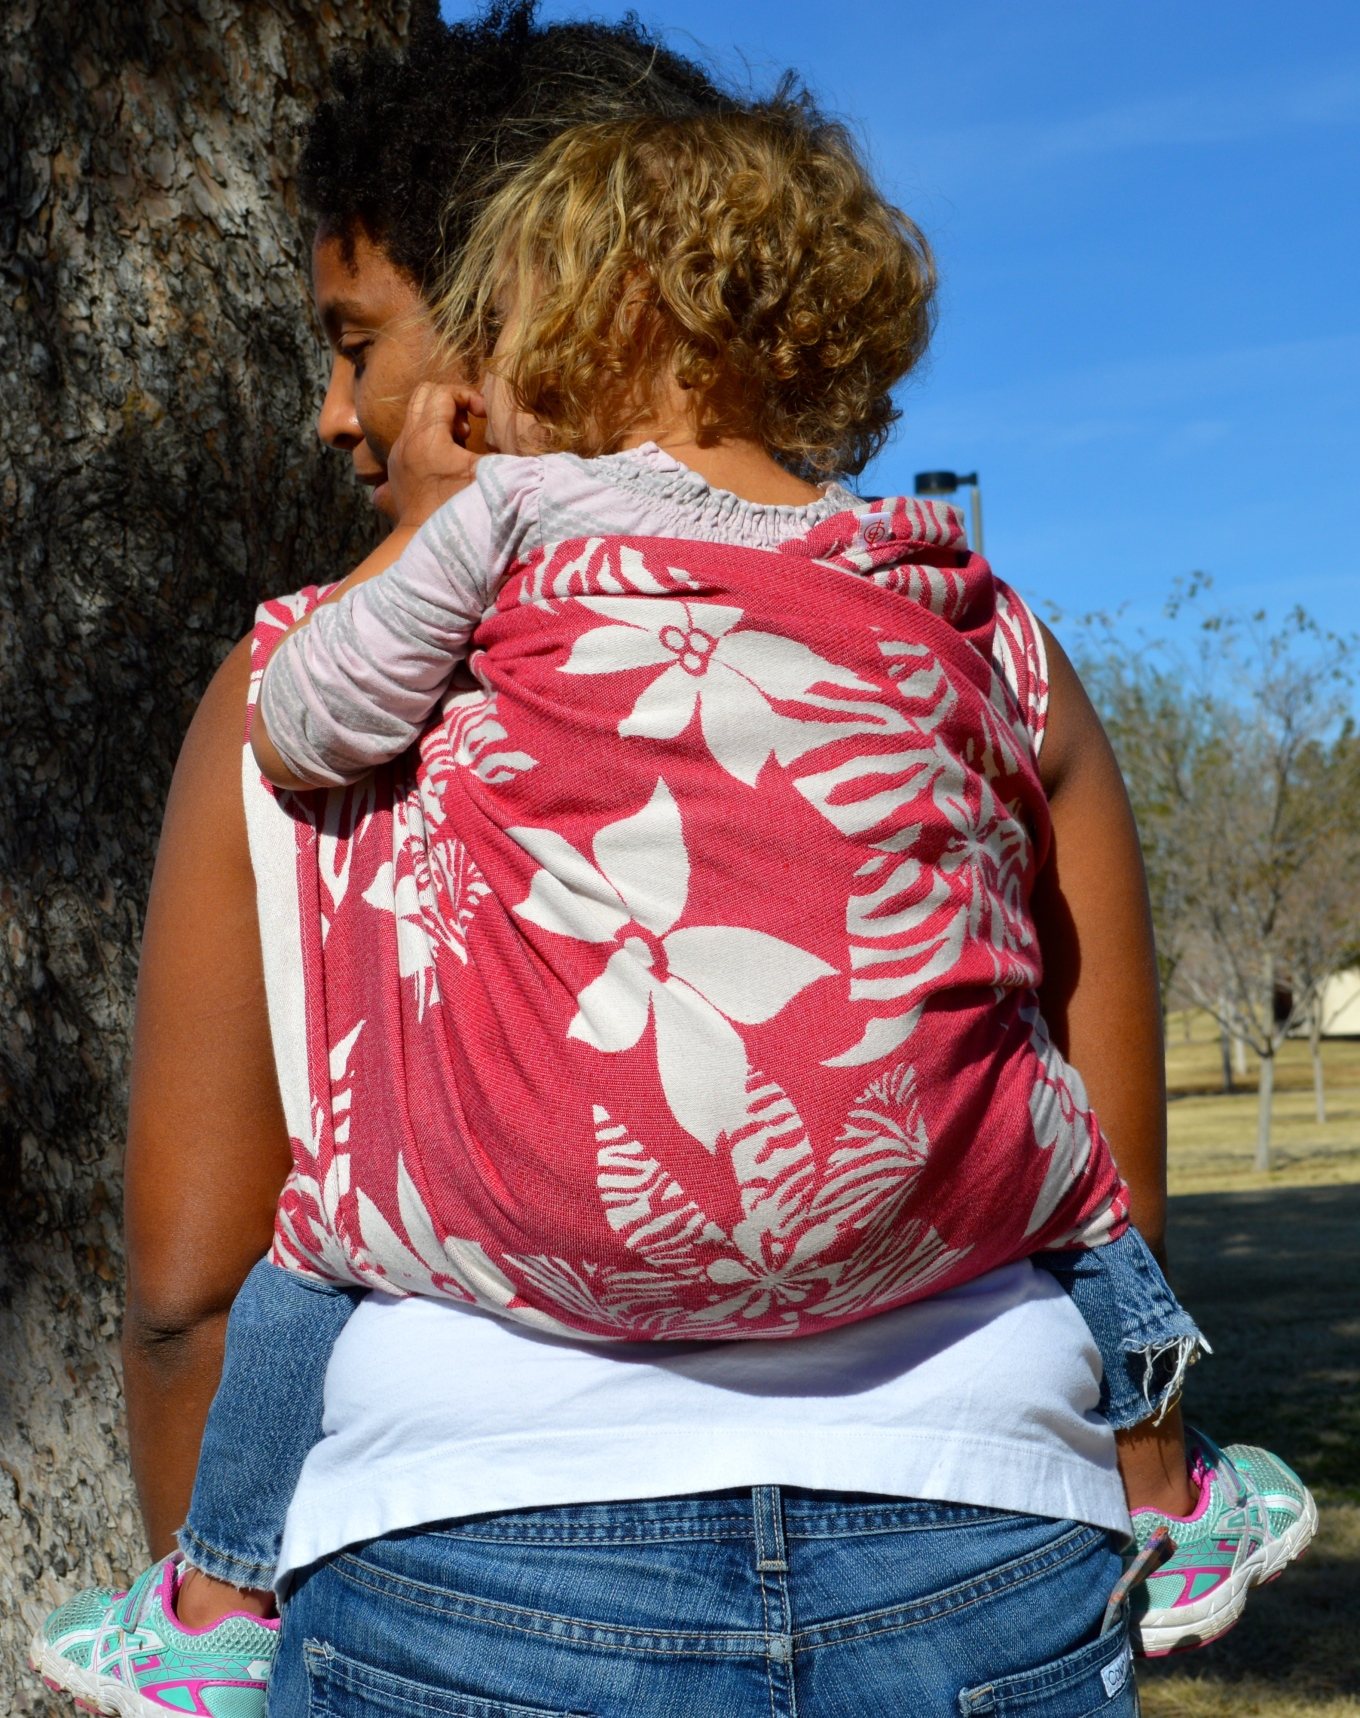 Momma wears blond curly haired toddler on her back in a magenta wrap with white flowers.